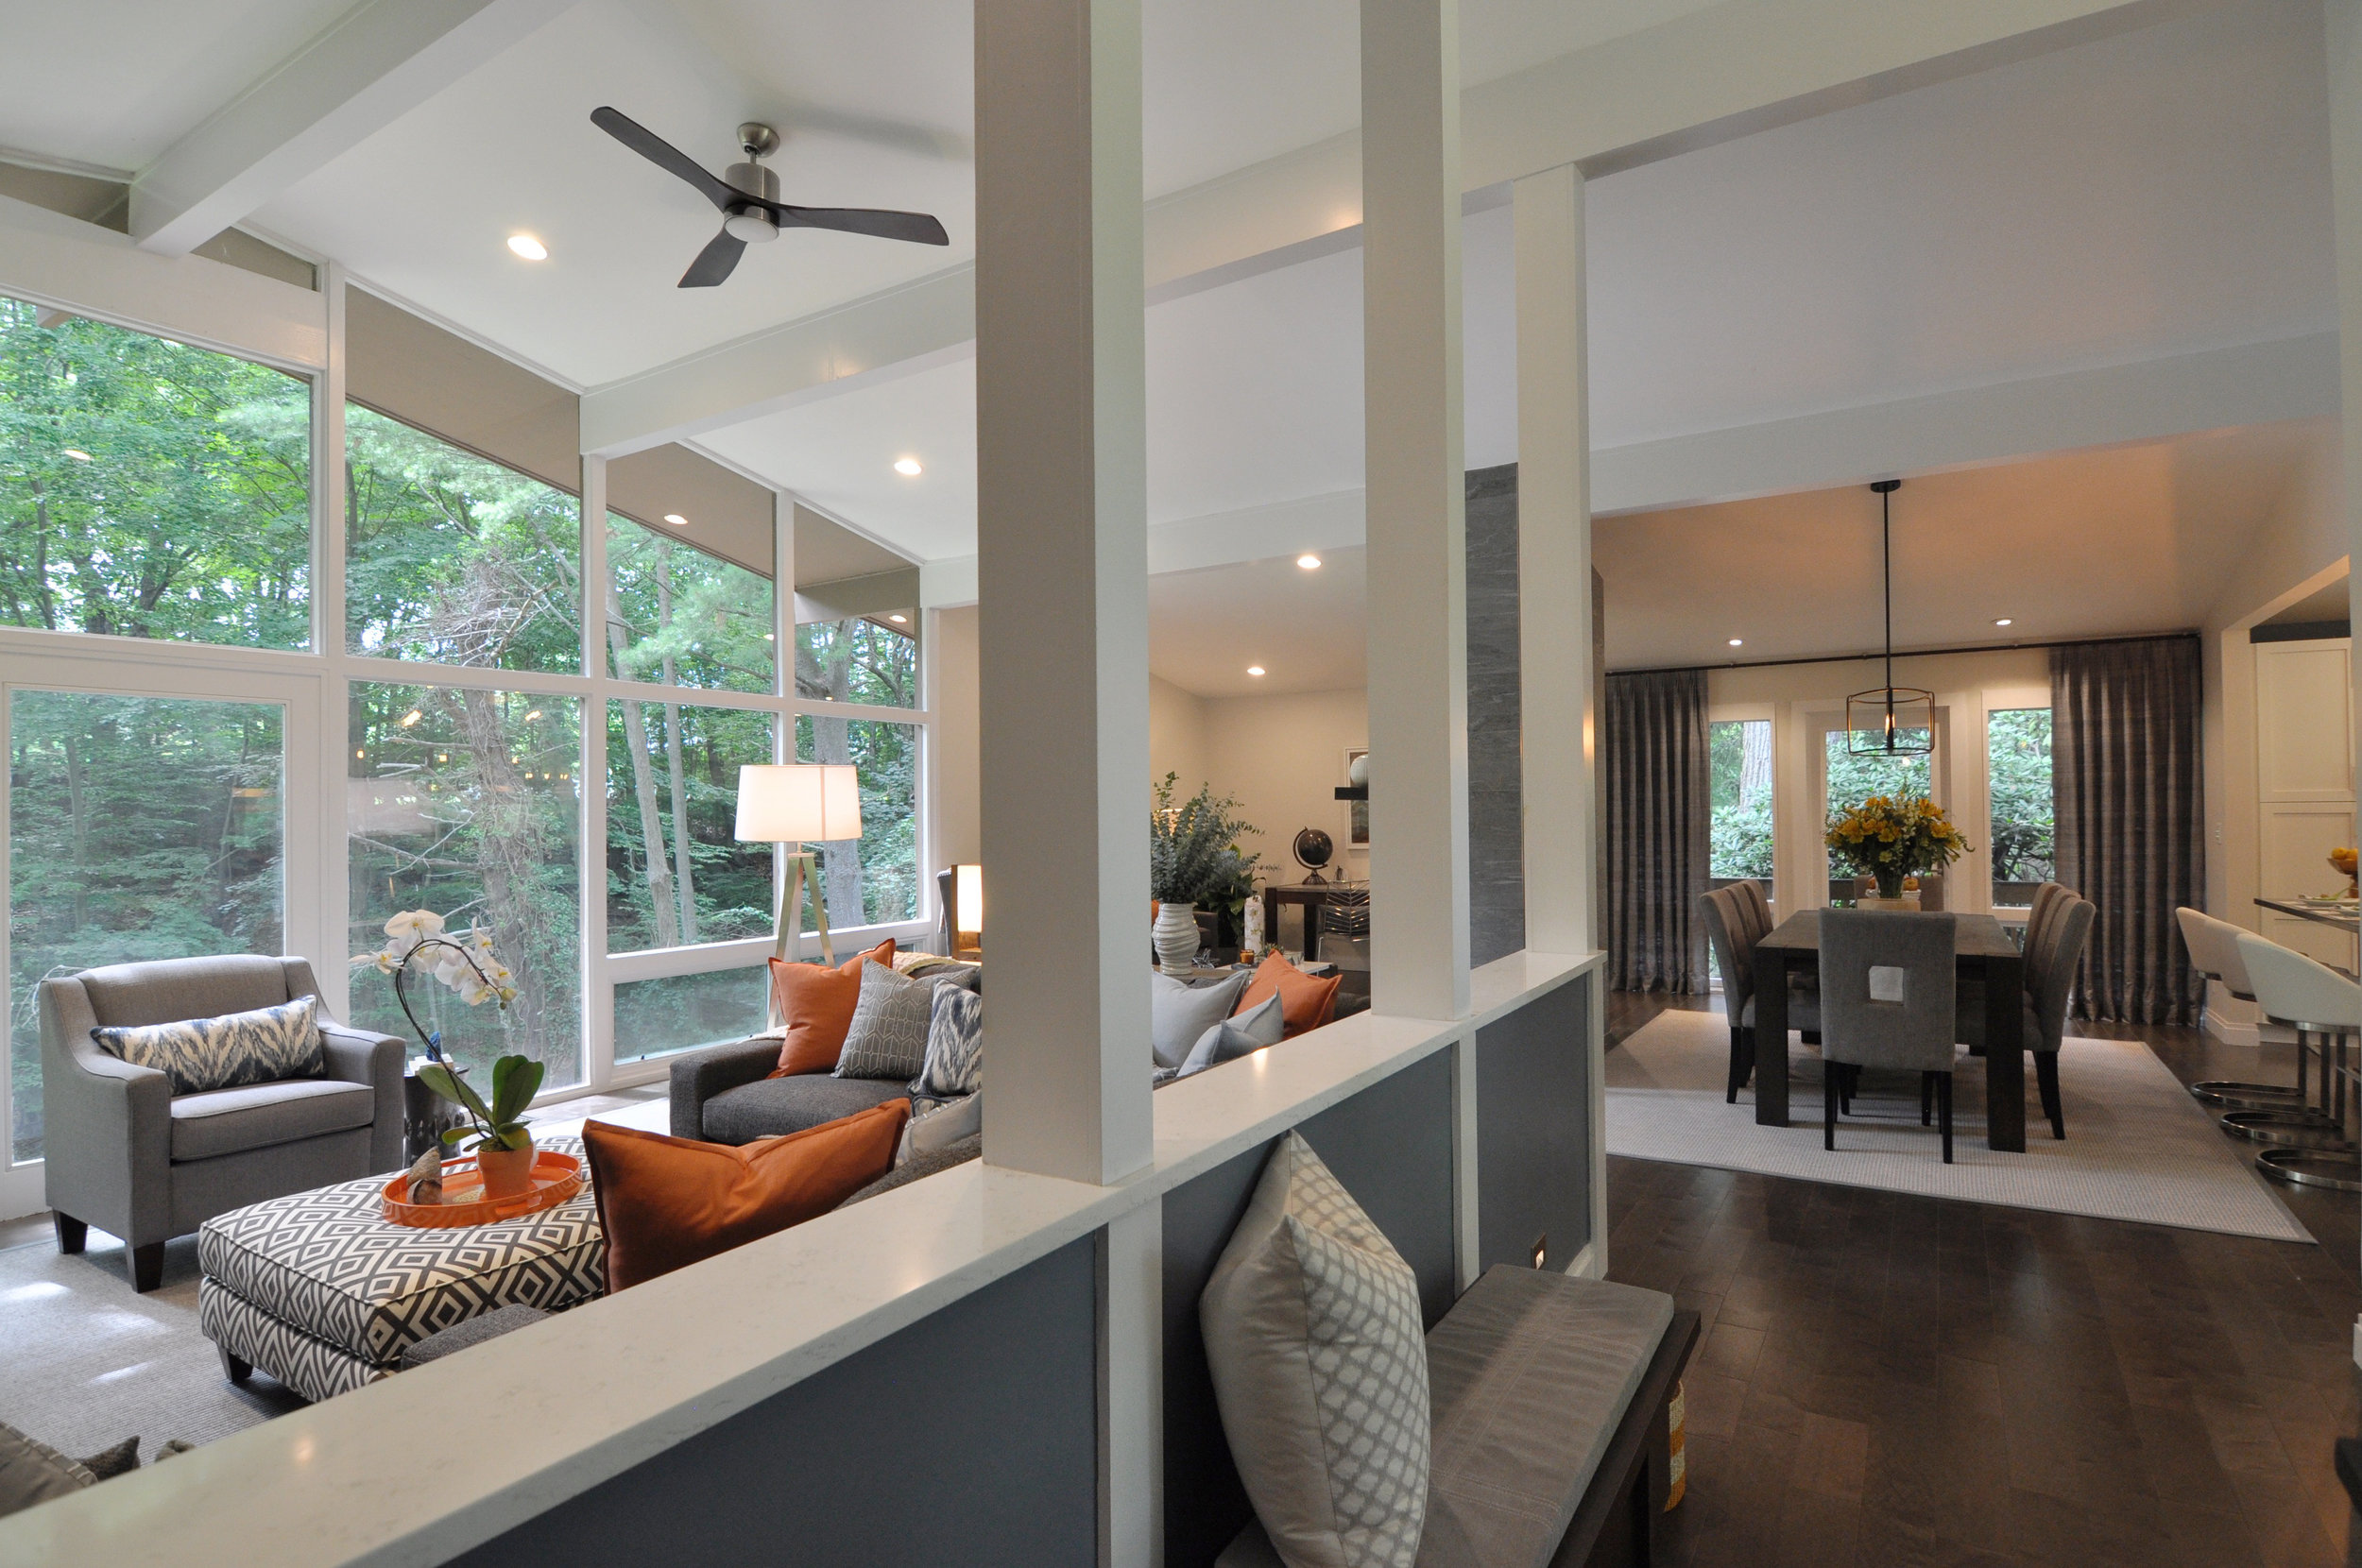 Kim A Mitchell_Design Lead_HGTV_The Property Brothers_Season 6_Episode 9_MidCentury Modern_Entry_Living Room_Dining Room_Modern Home.jpg